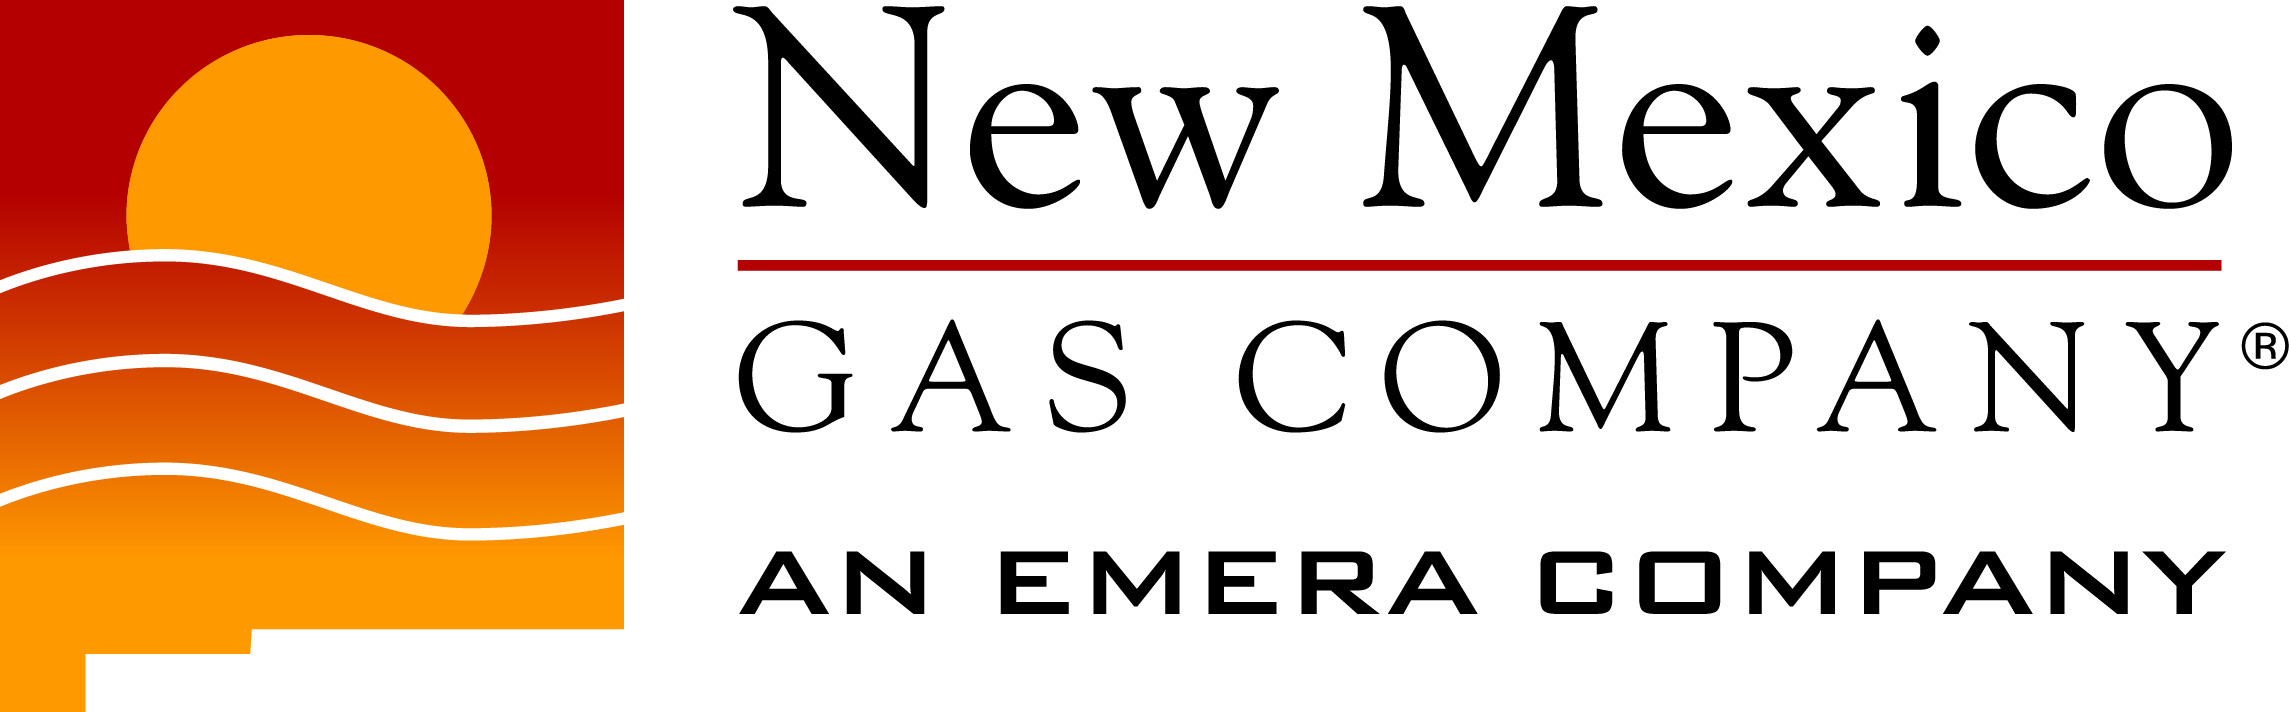 Thank you, NM Gas Company!